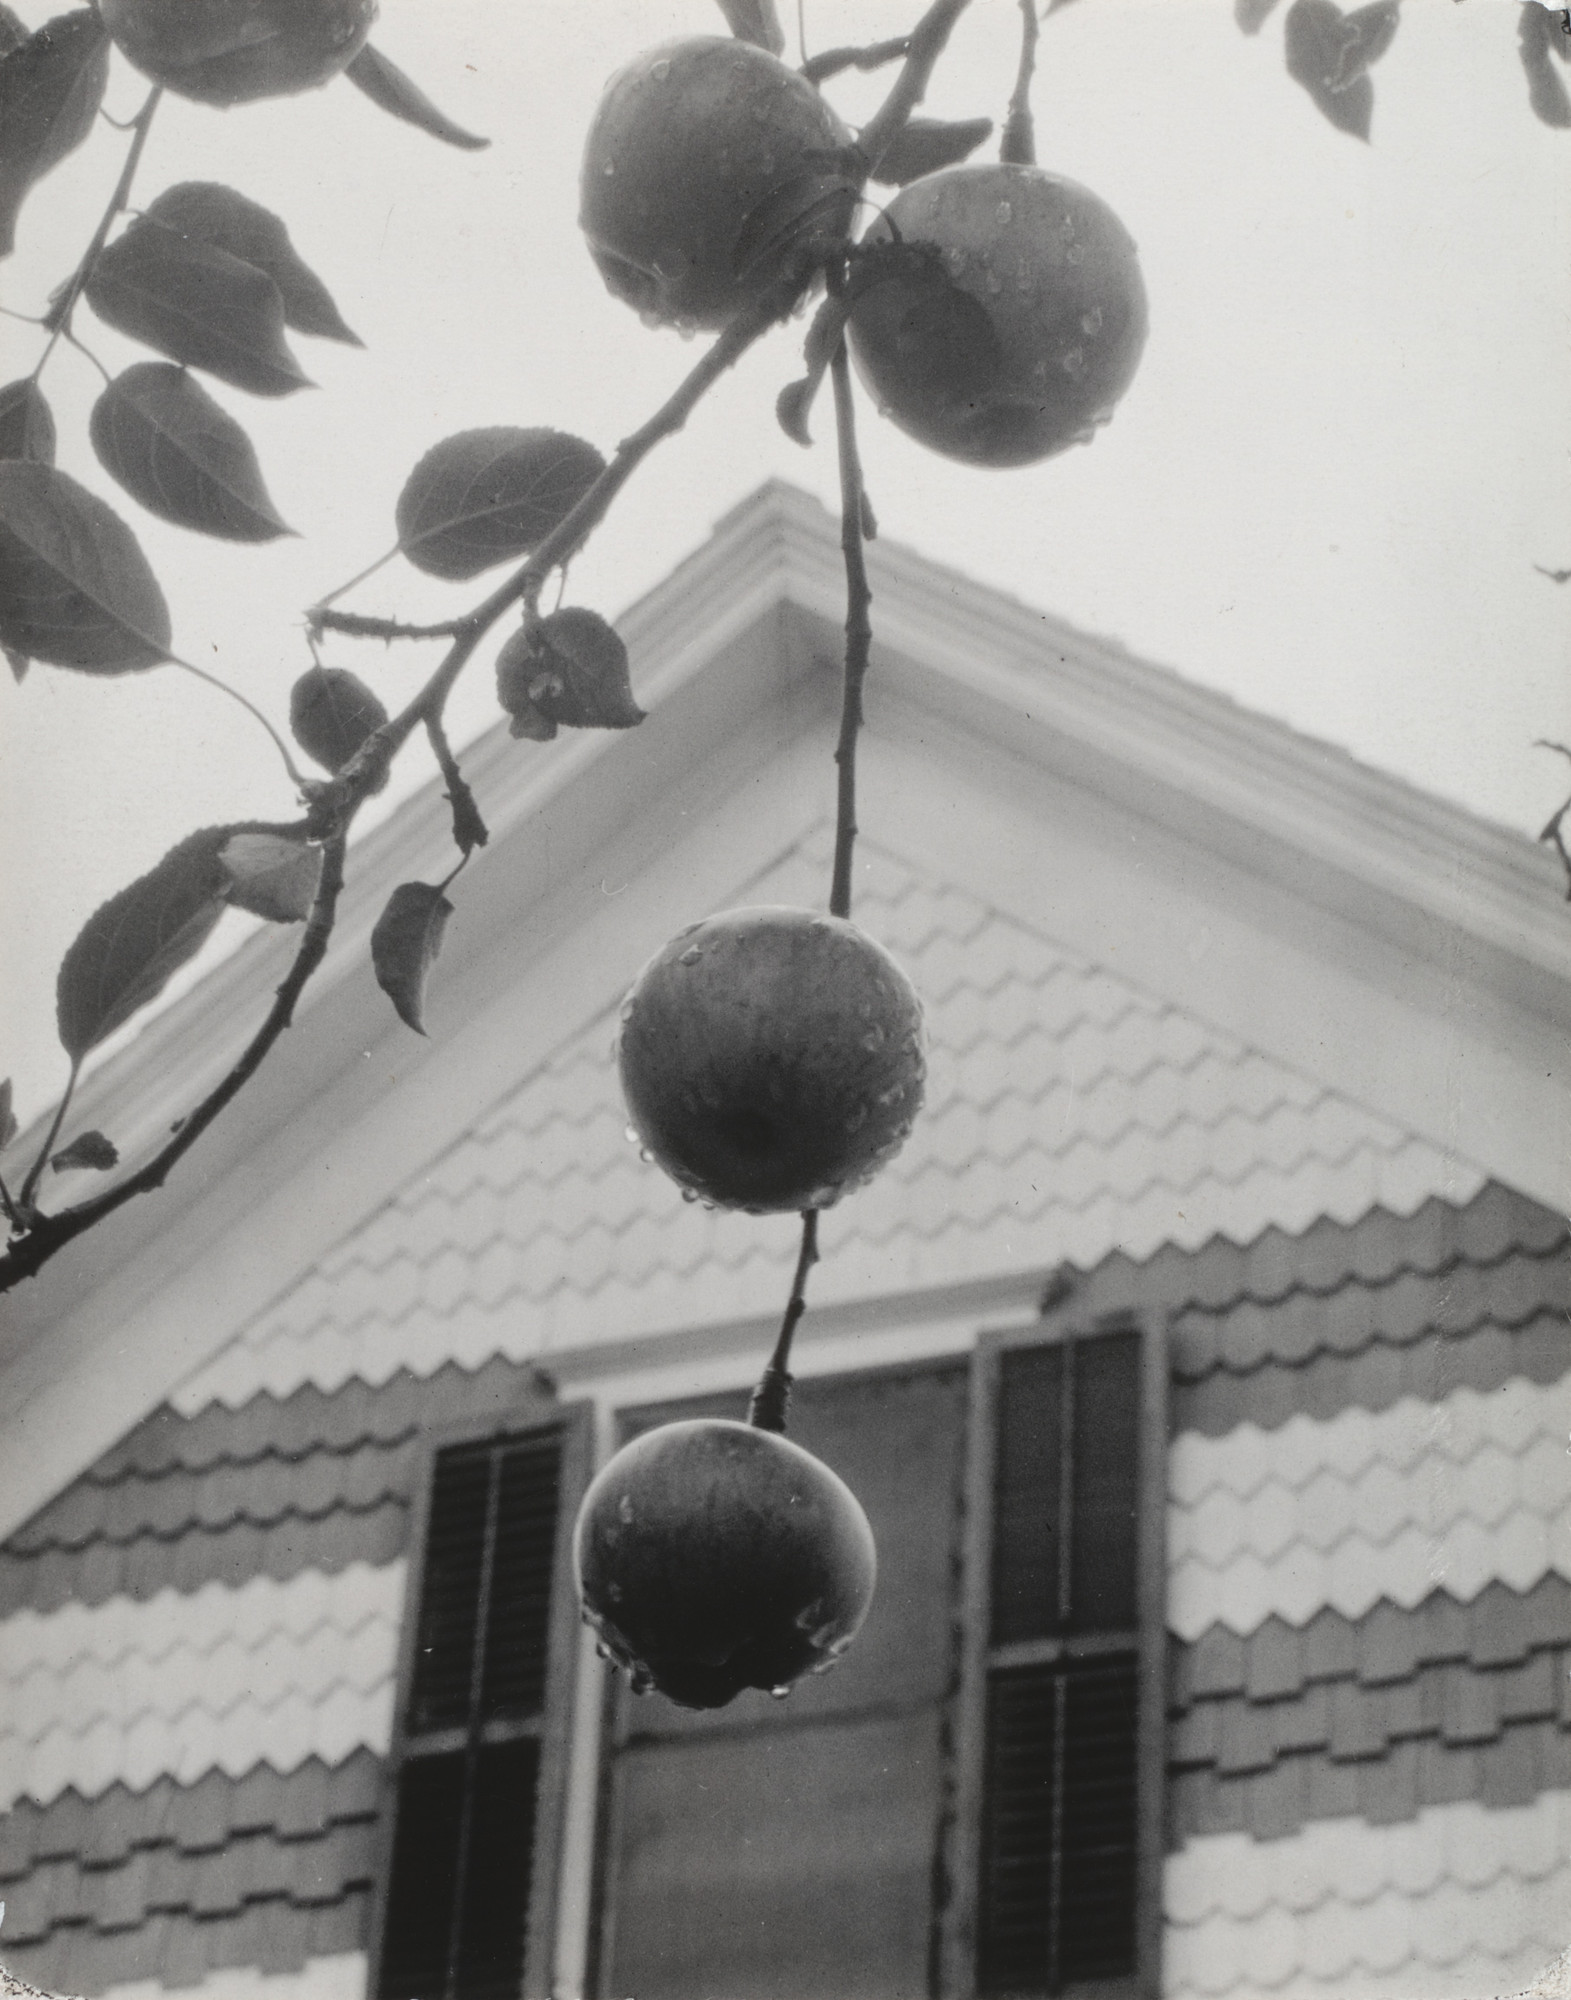 Alfred Stieglitz. Apples and Gable, Lake George. 1922